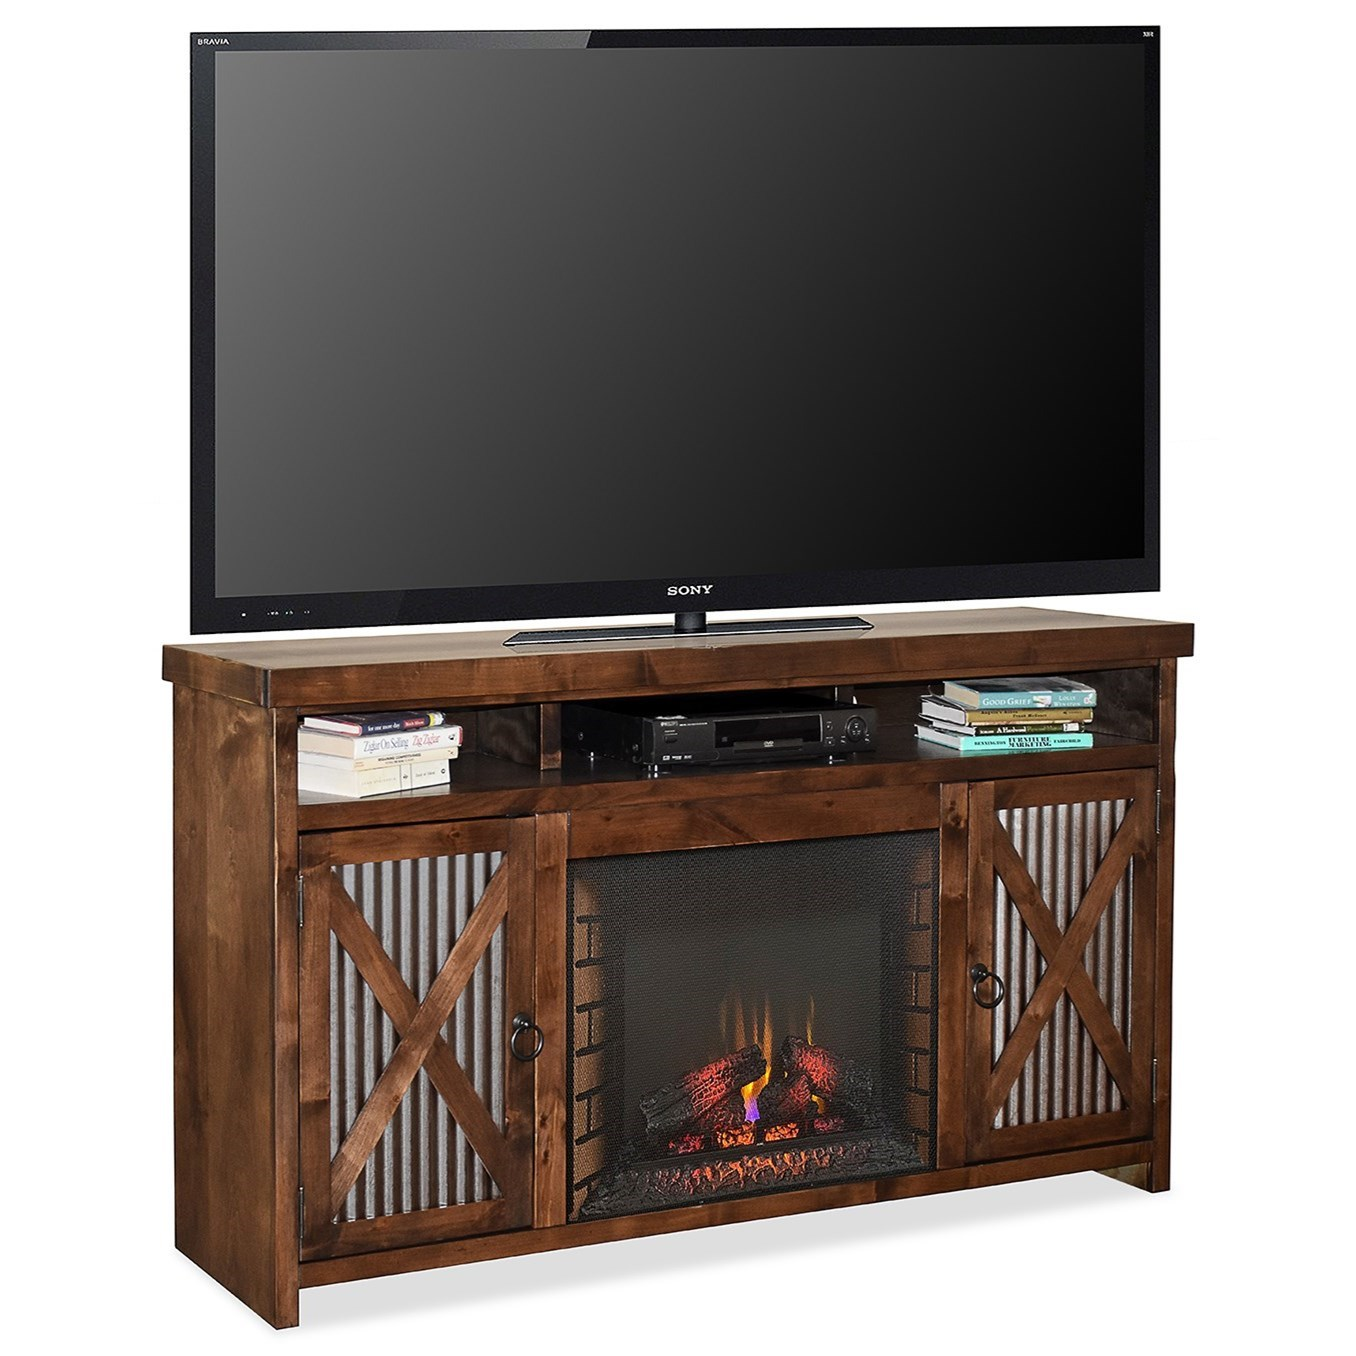 Jackson Hole Fireplace Console by Legends Furniture at Home Furnishings Direct